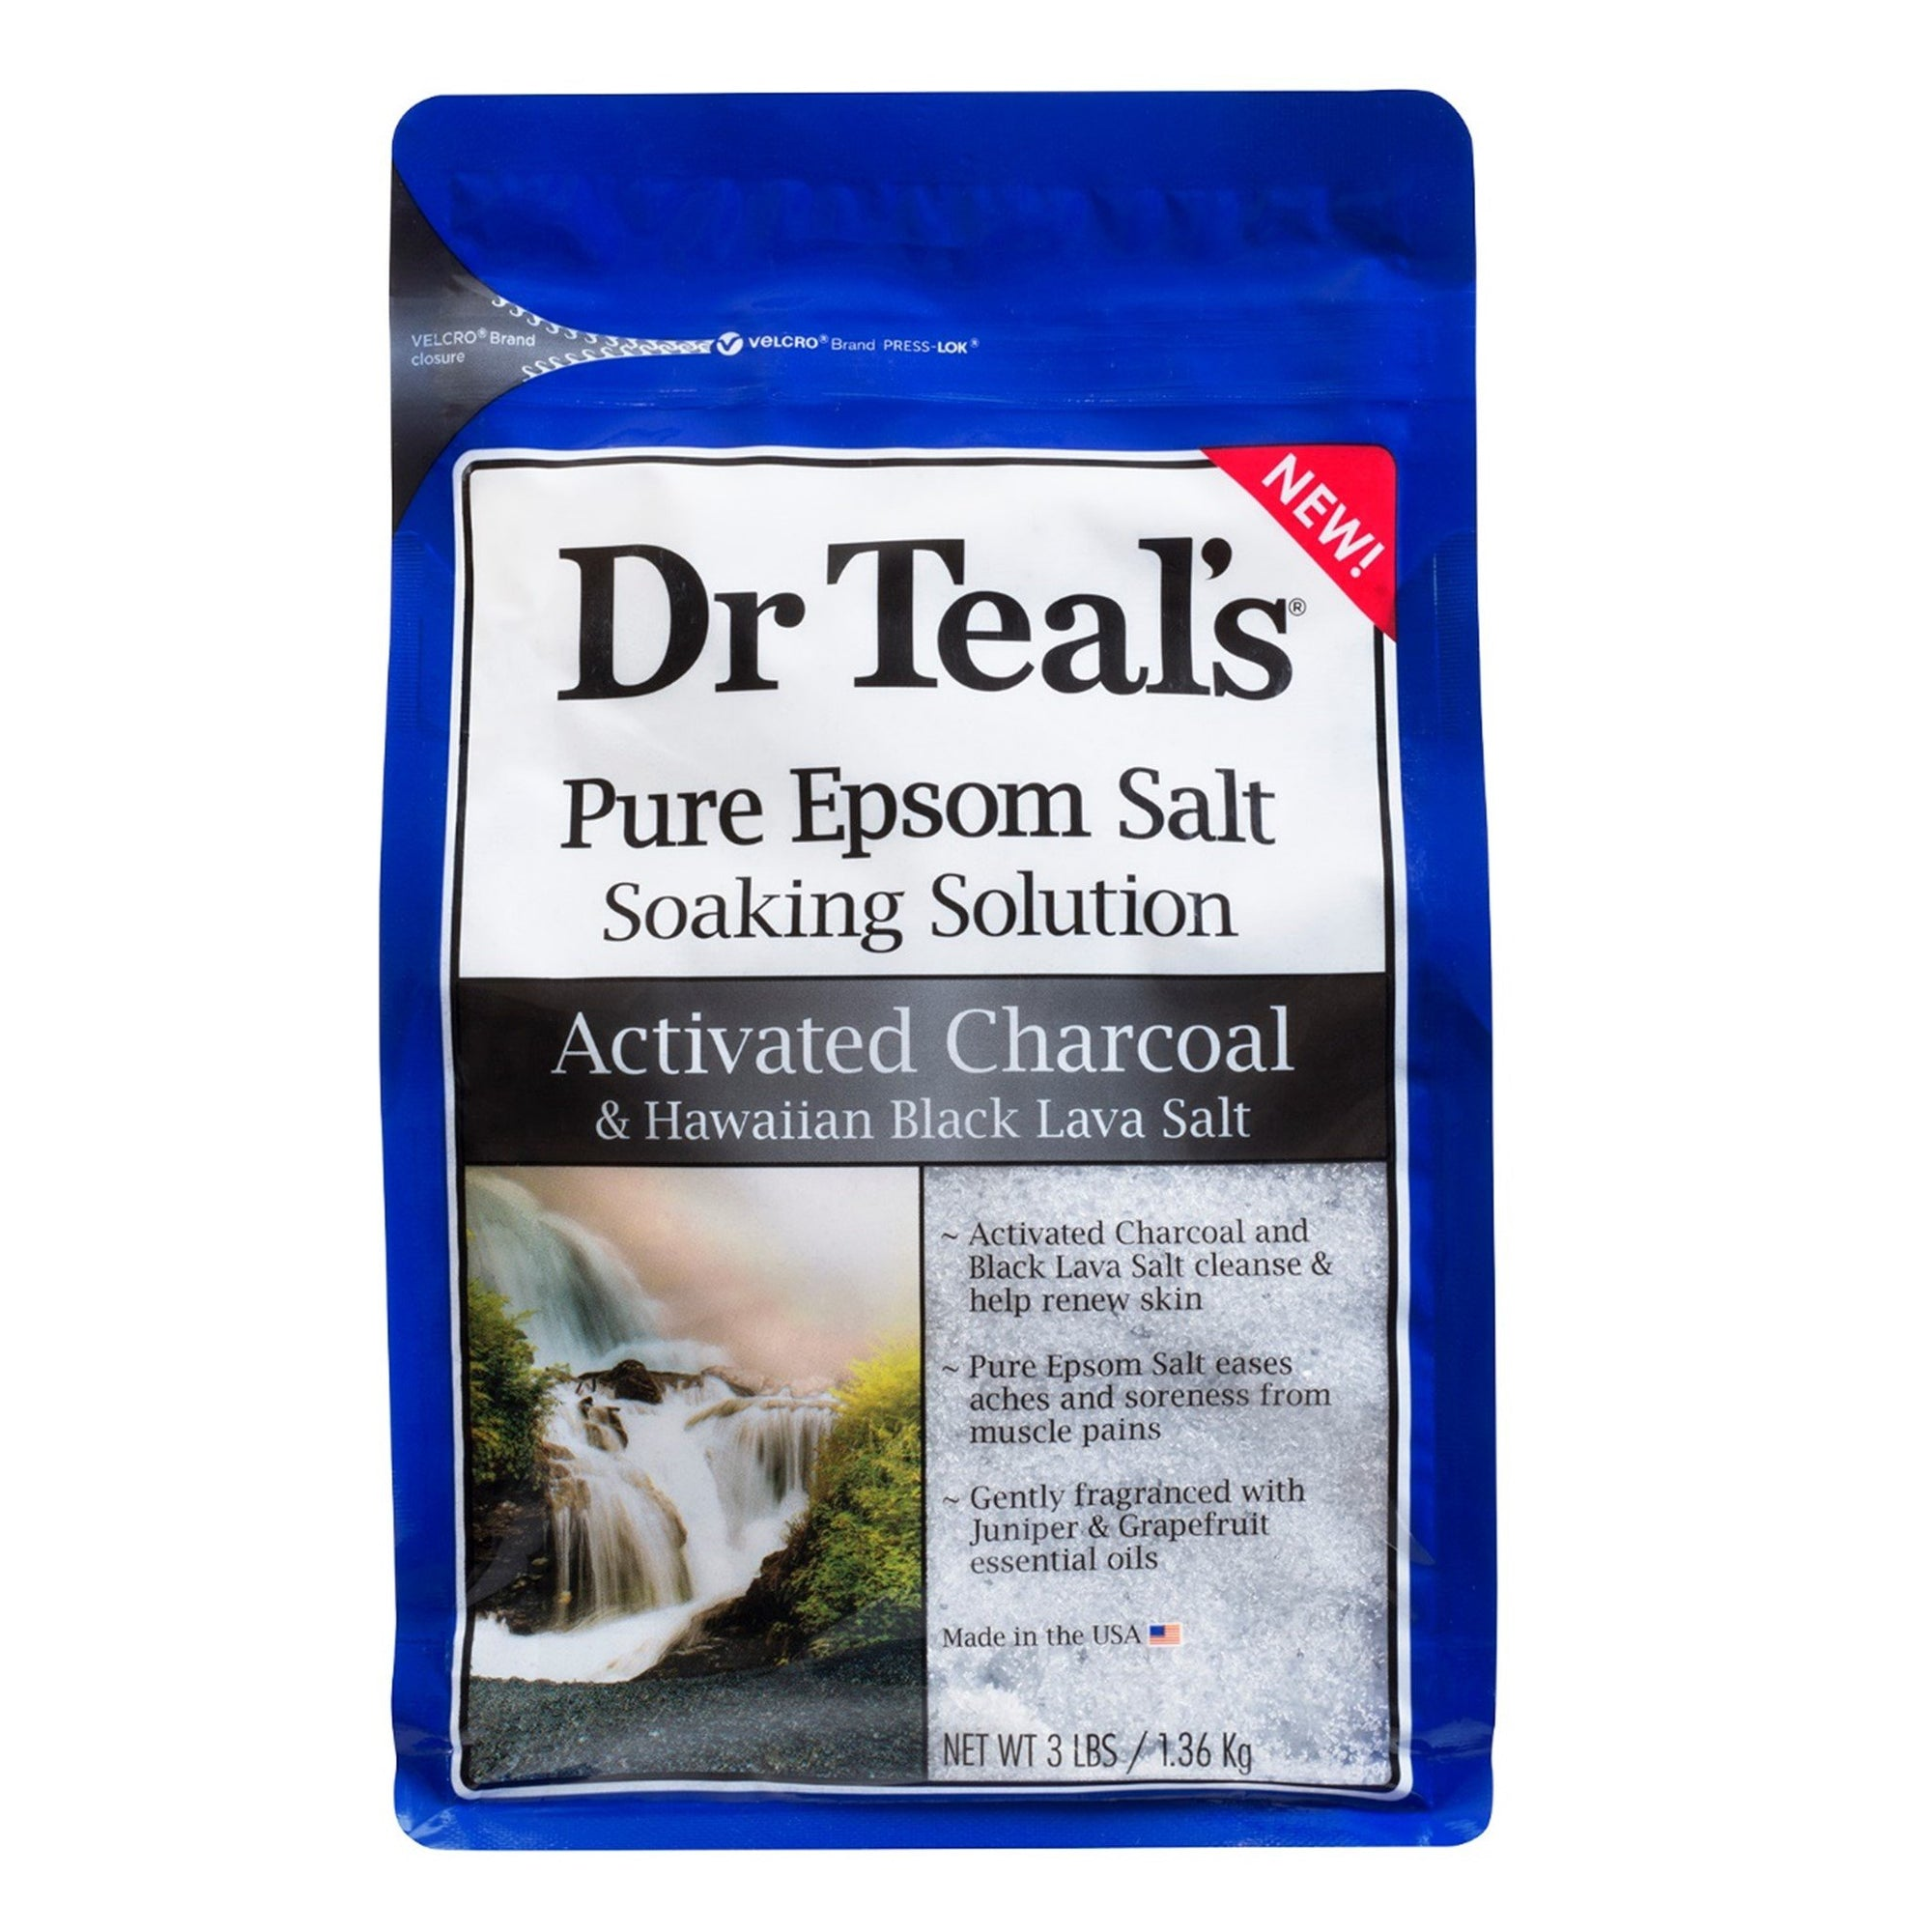 Dr Teal's Epsom Salts Active Charcoal & Hawaiian Black Lava 1360G